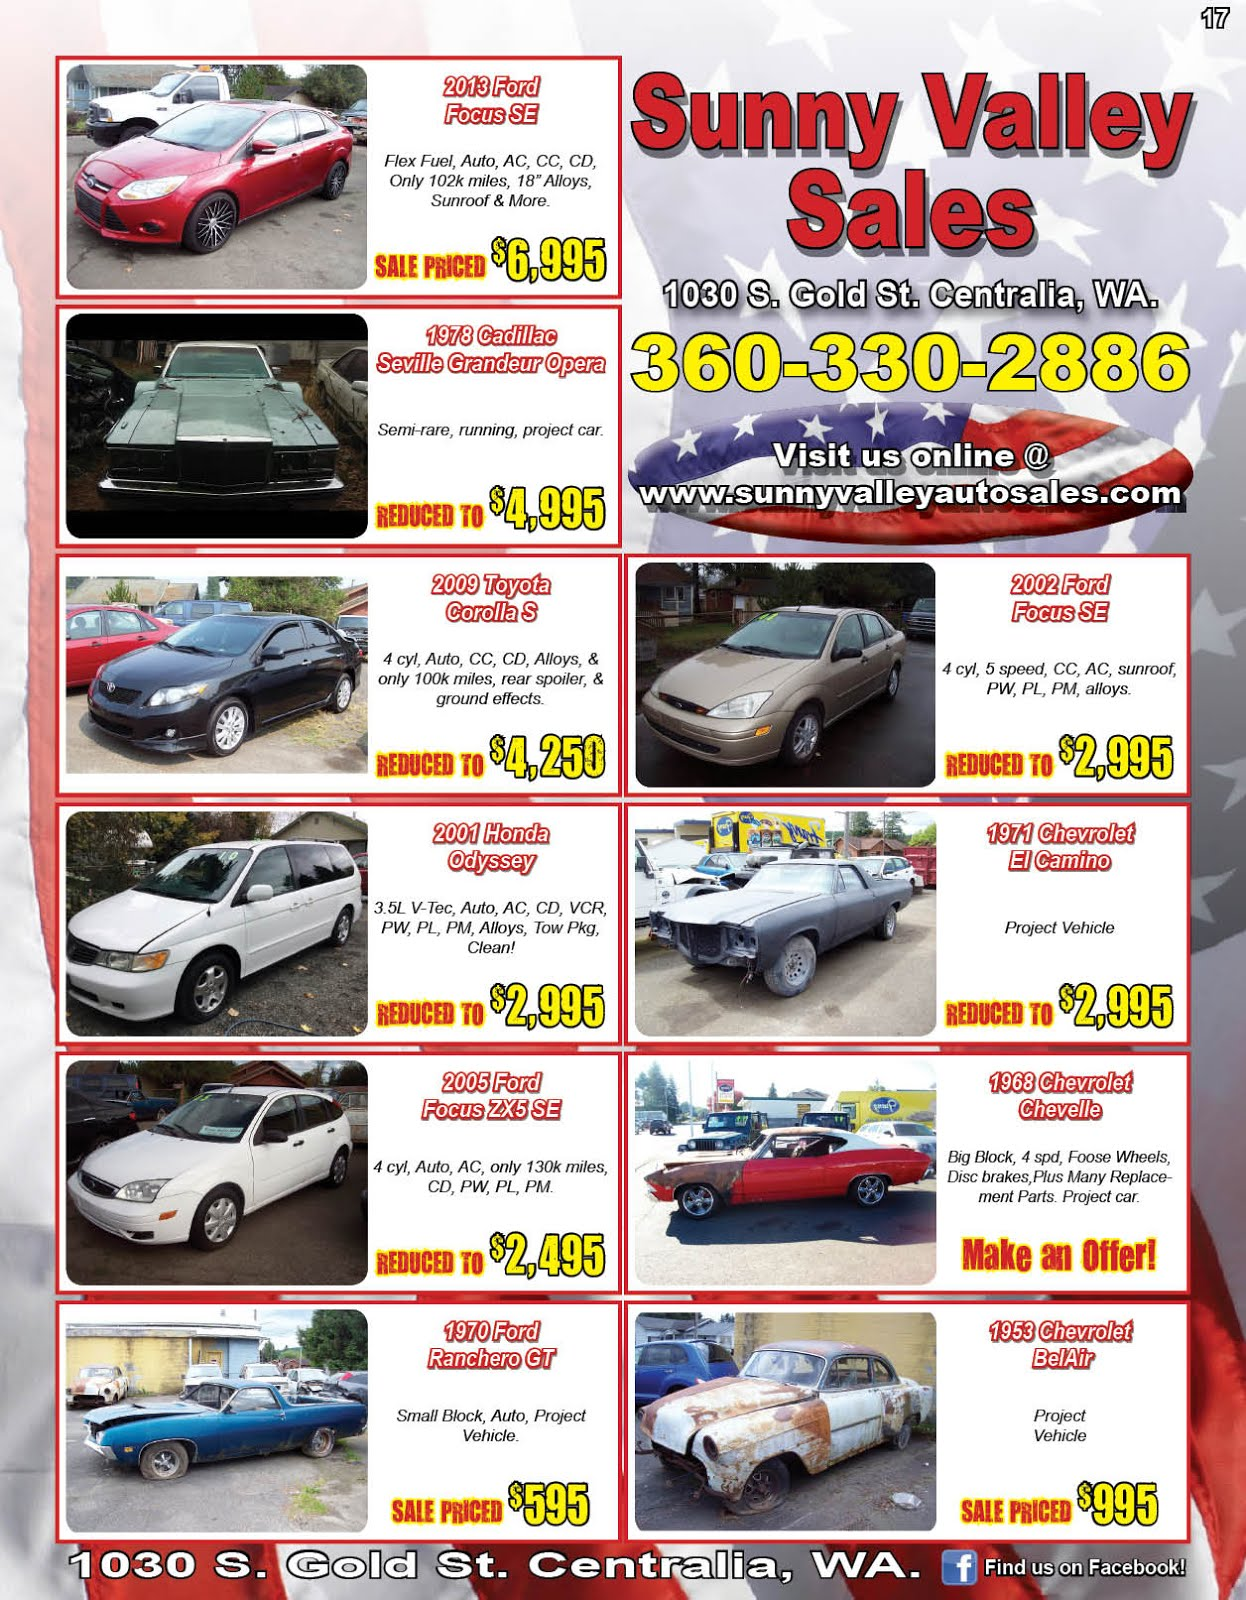 Sunny Valley Sales Classics Cars Trucks Projects & More!!